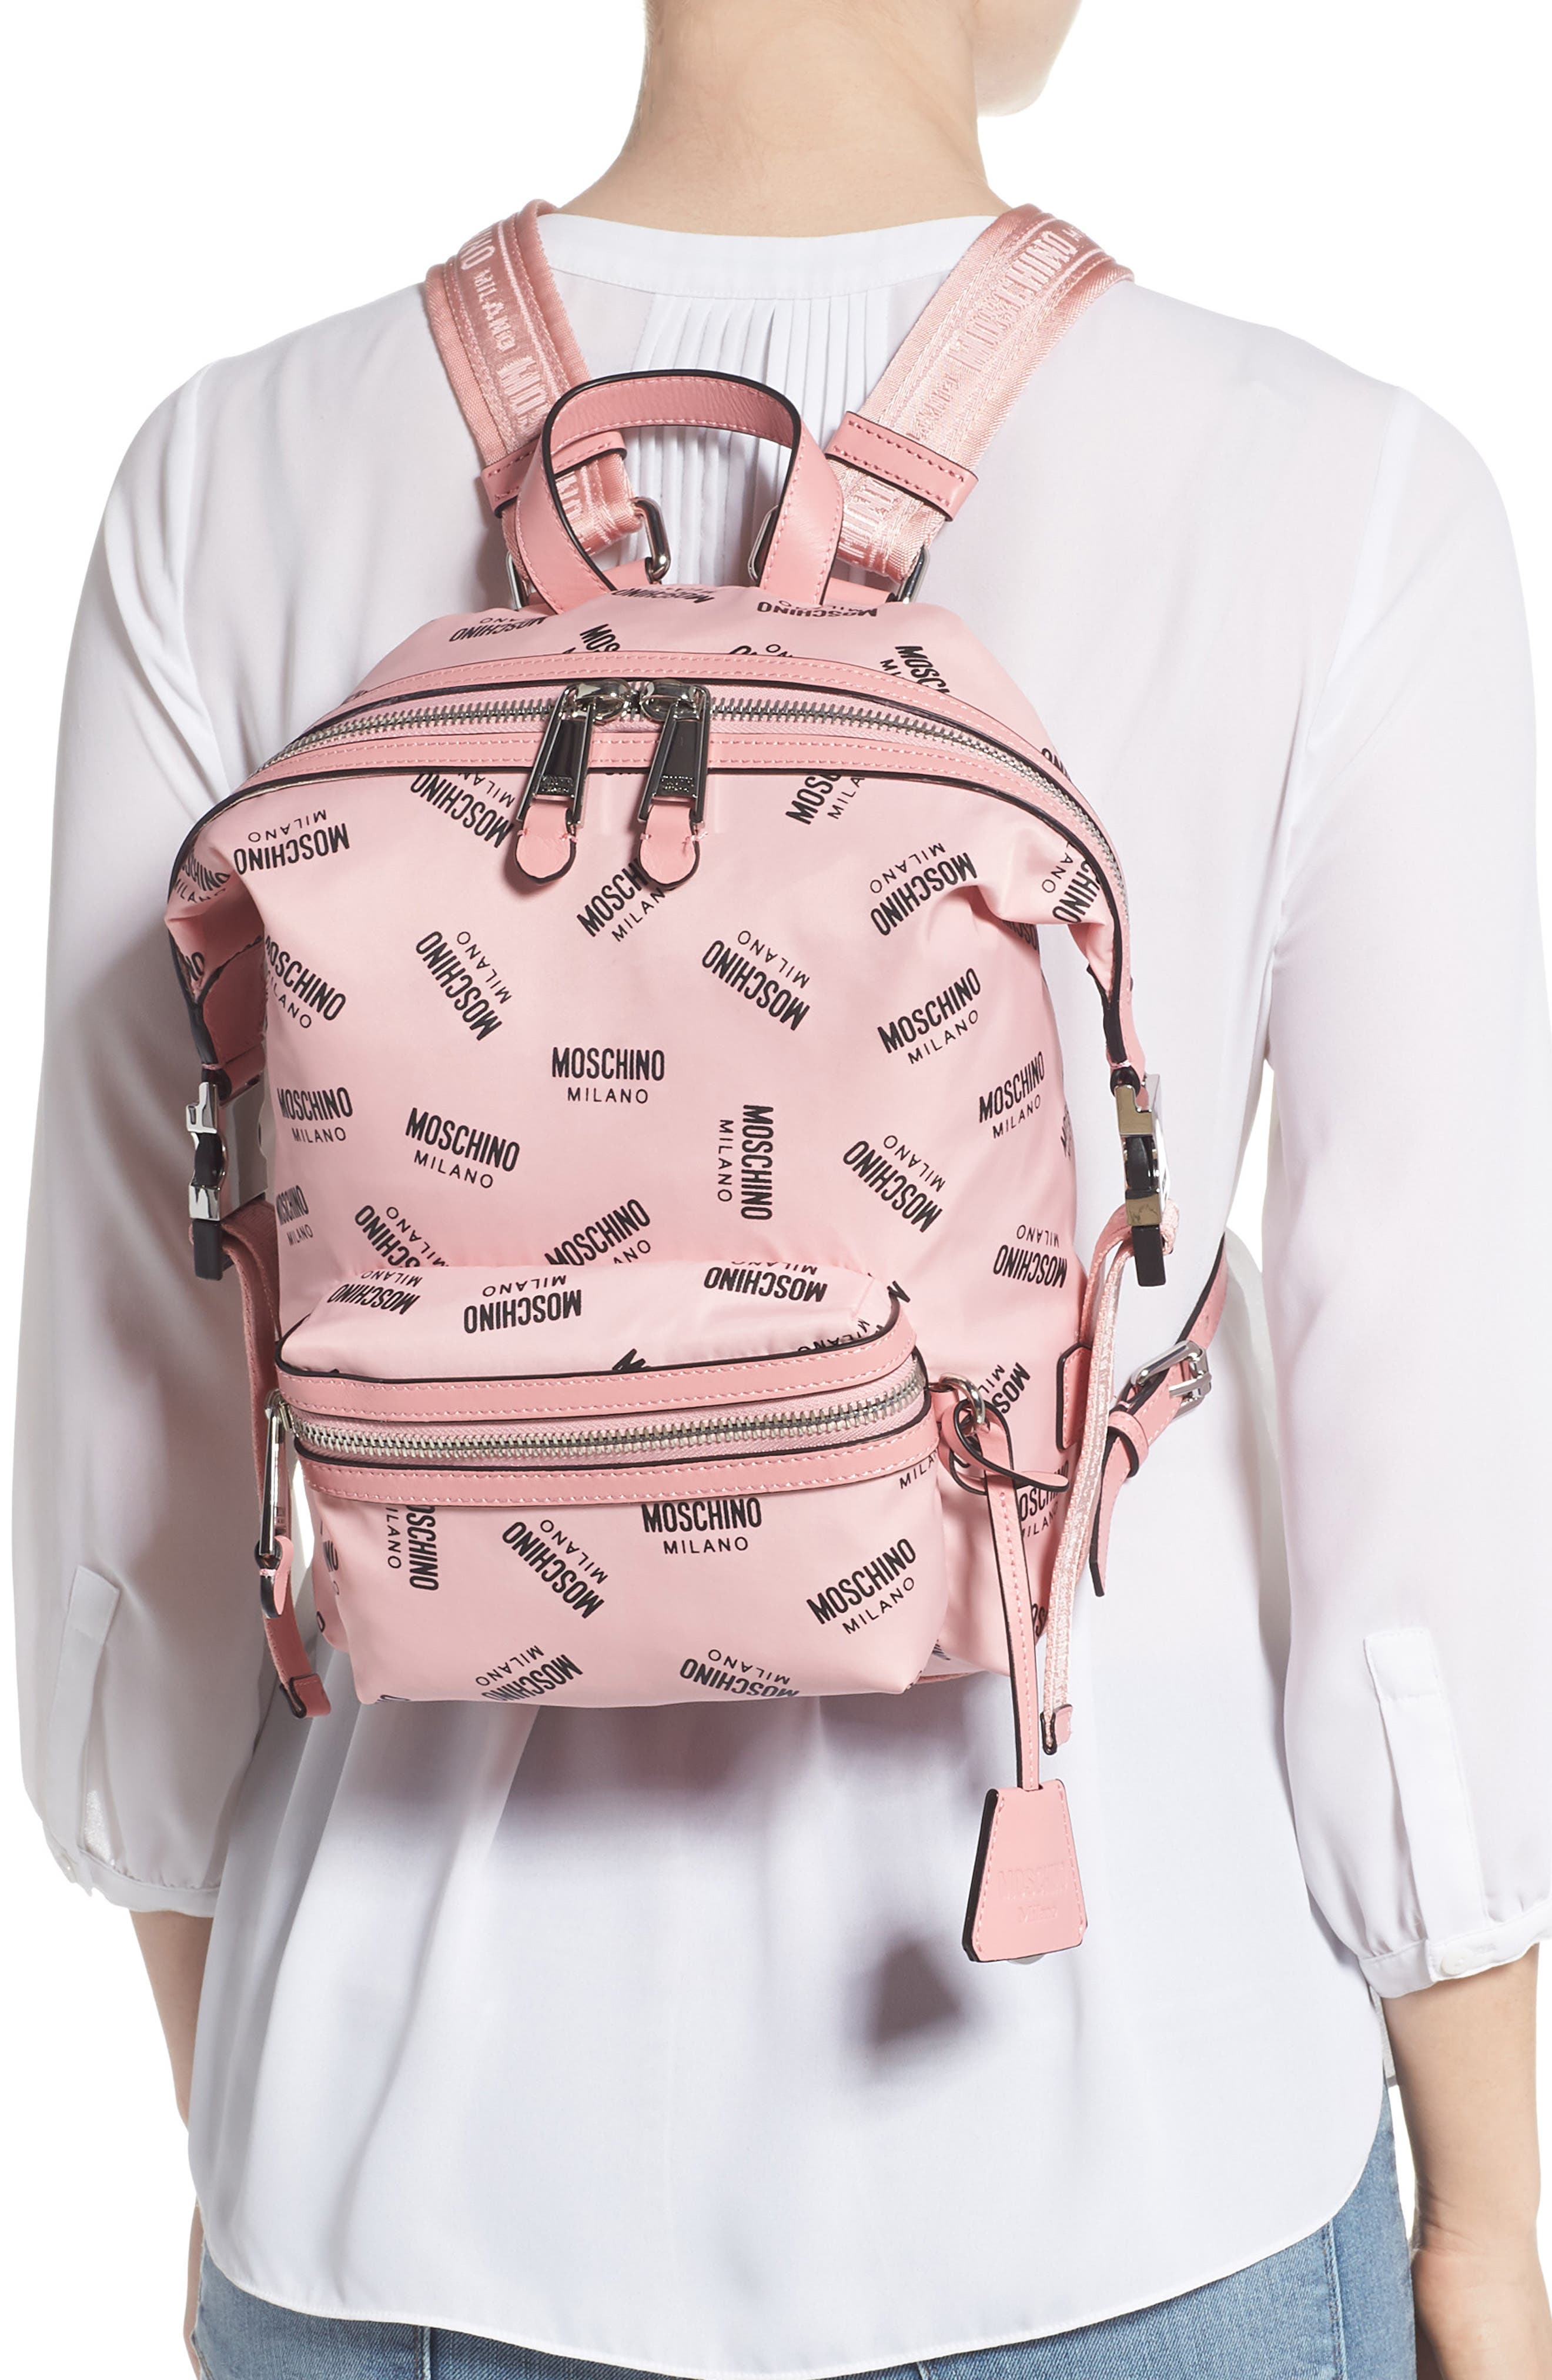 MOSCHINO,                             Small Logo Backpack,                             Alternate thumbnail 2, color,                             PINK